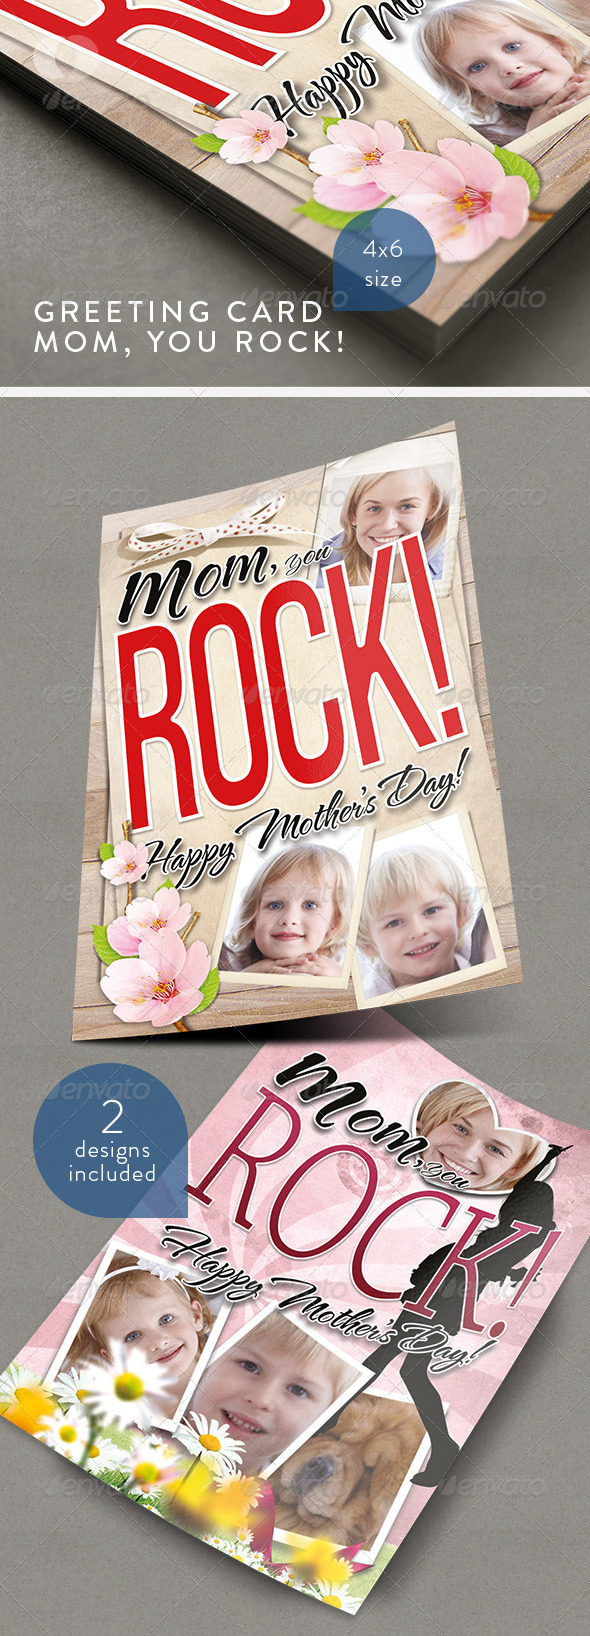 Mother's Day Greeting Cards - Vol.2 - Greeting Cards Cards & Invites